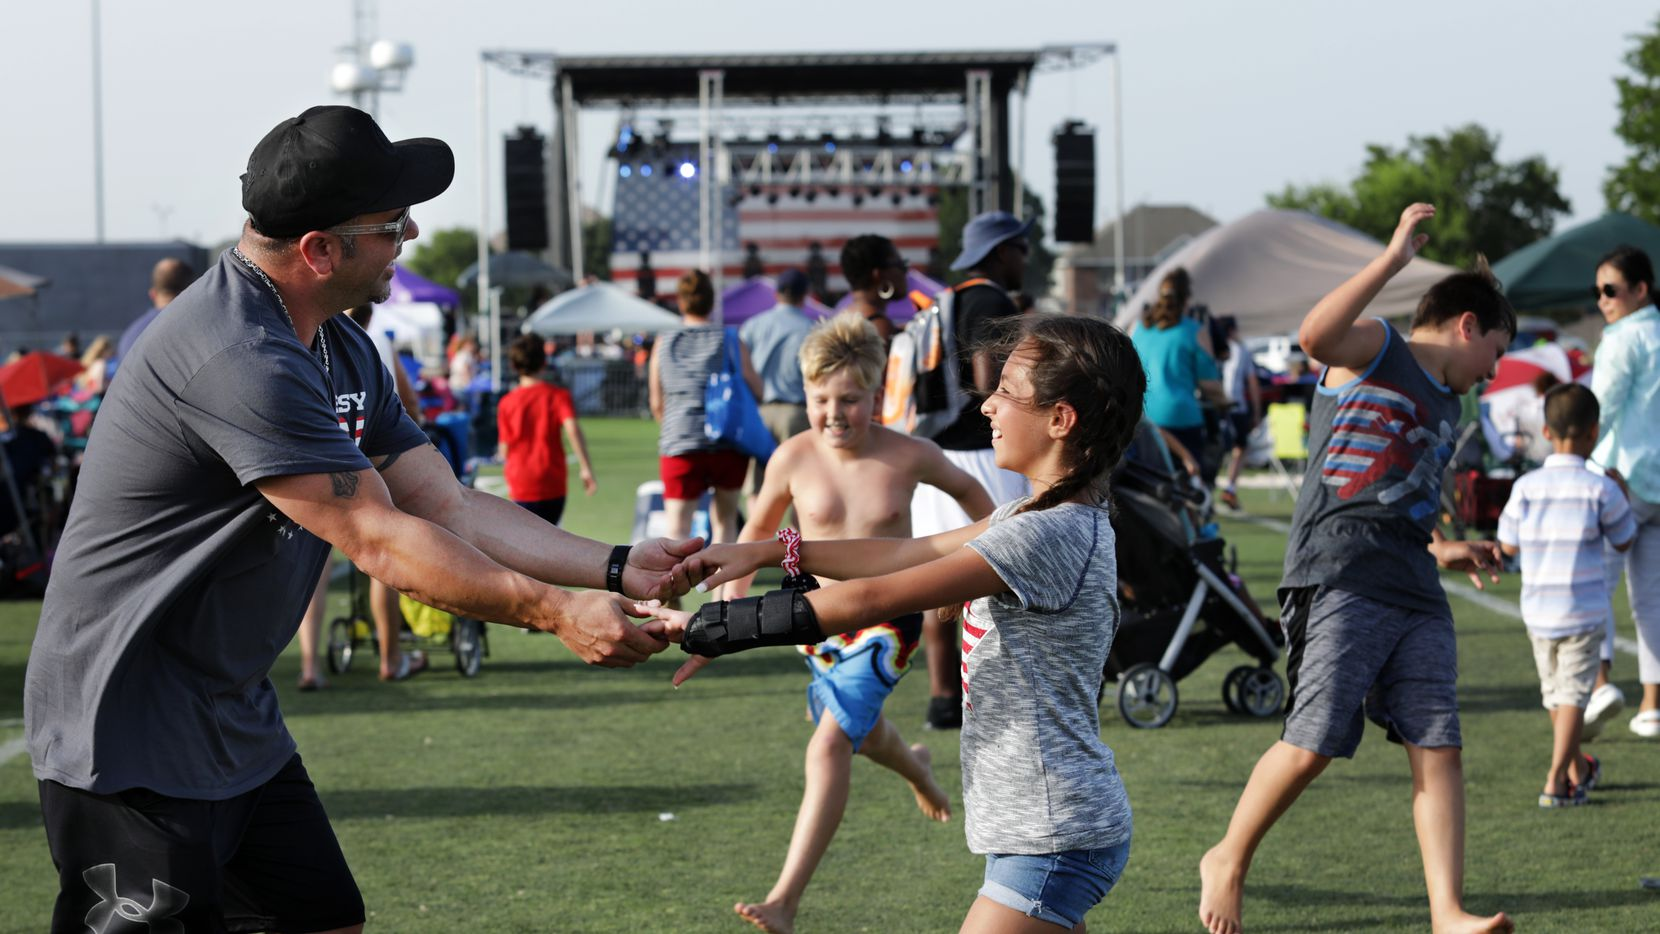 Ted Paulmeno, left, and 11-year-old Adriana Paulmeno dance to the music during the Allen USA Celebration at Celebration Park in Allen, TX, on June 30, 2018.